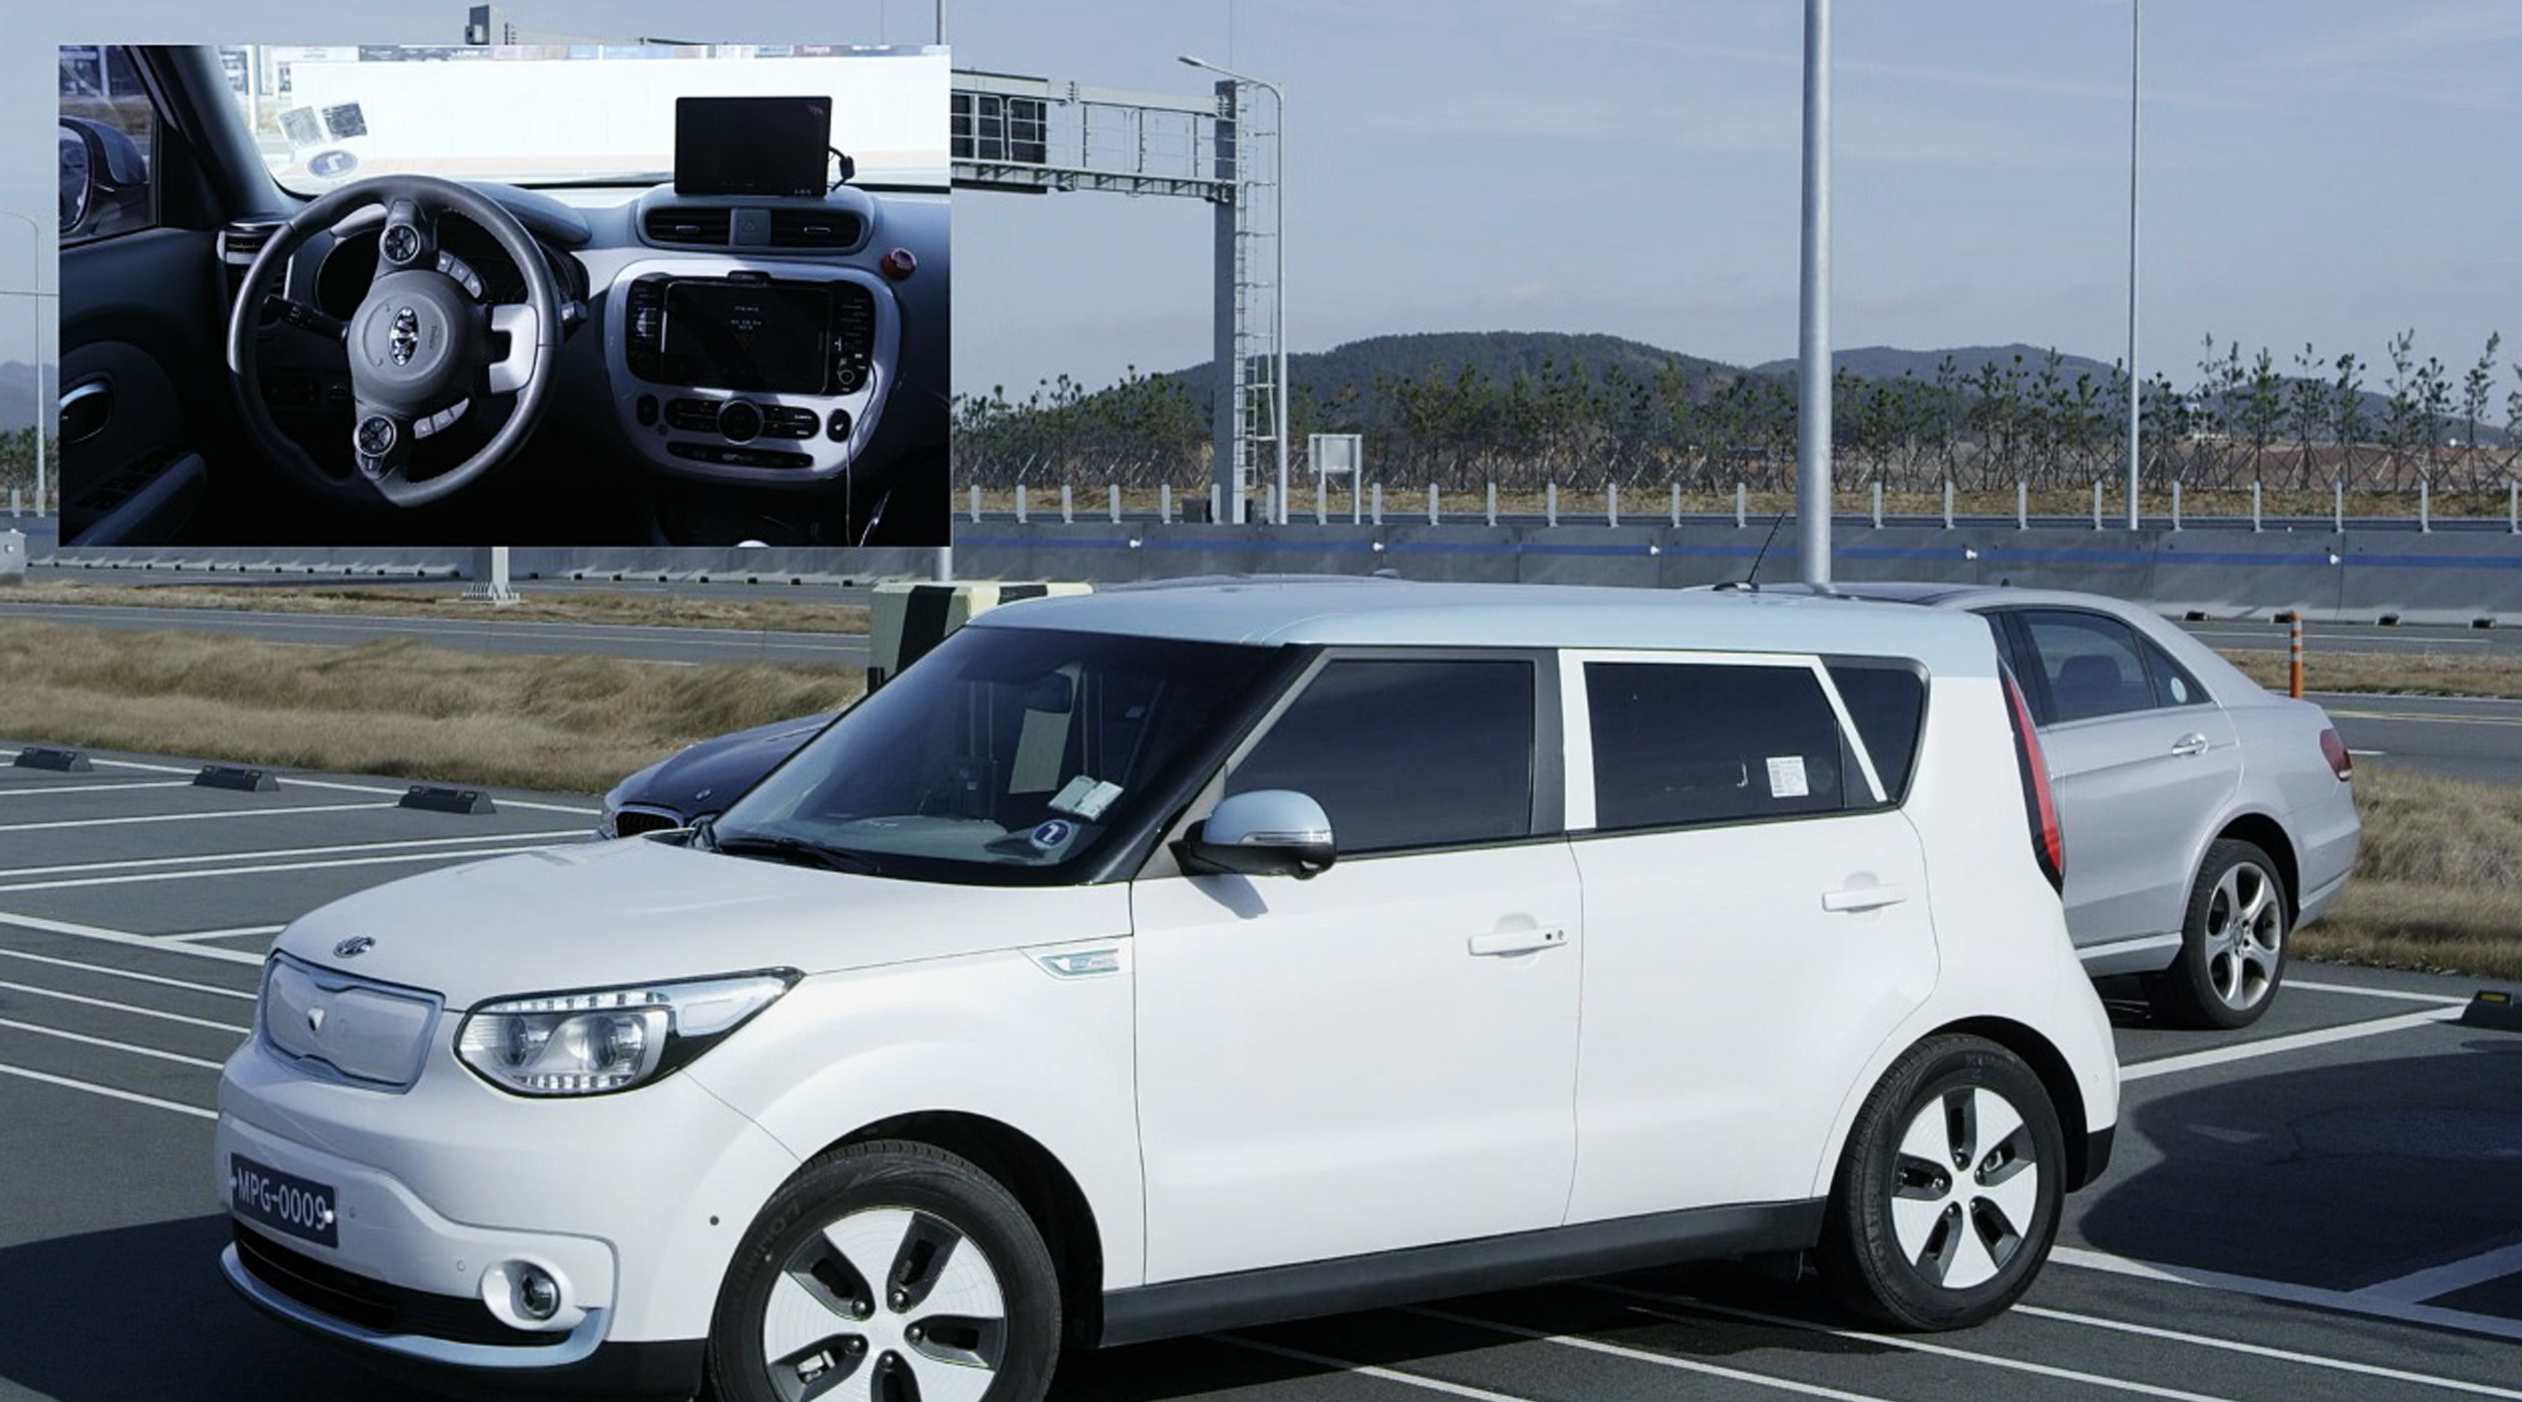 Hyundai Mobis Develops Cutting-Edge Braking and Parking Technologies